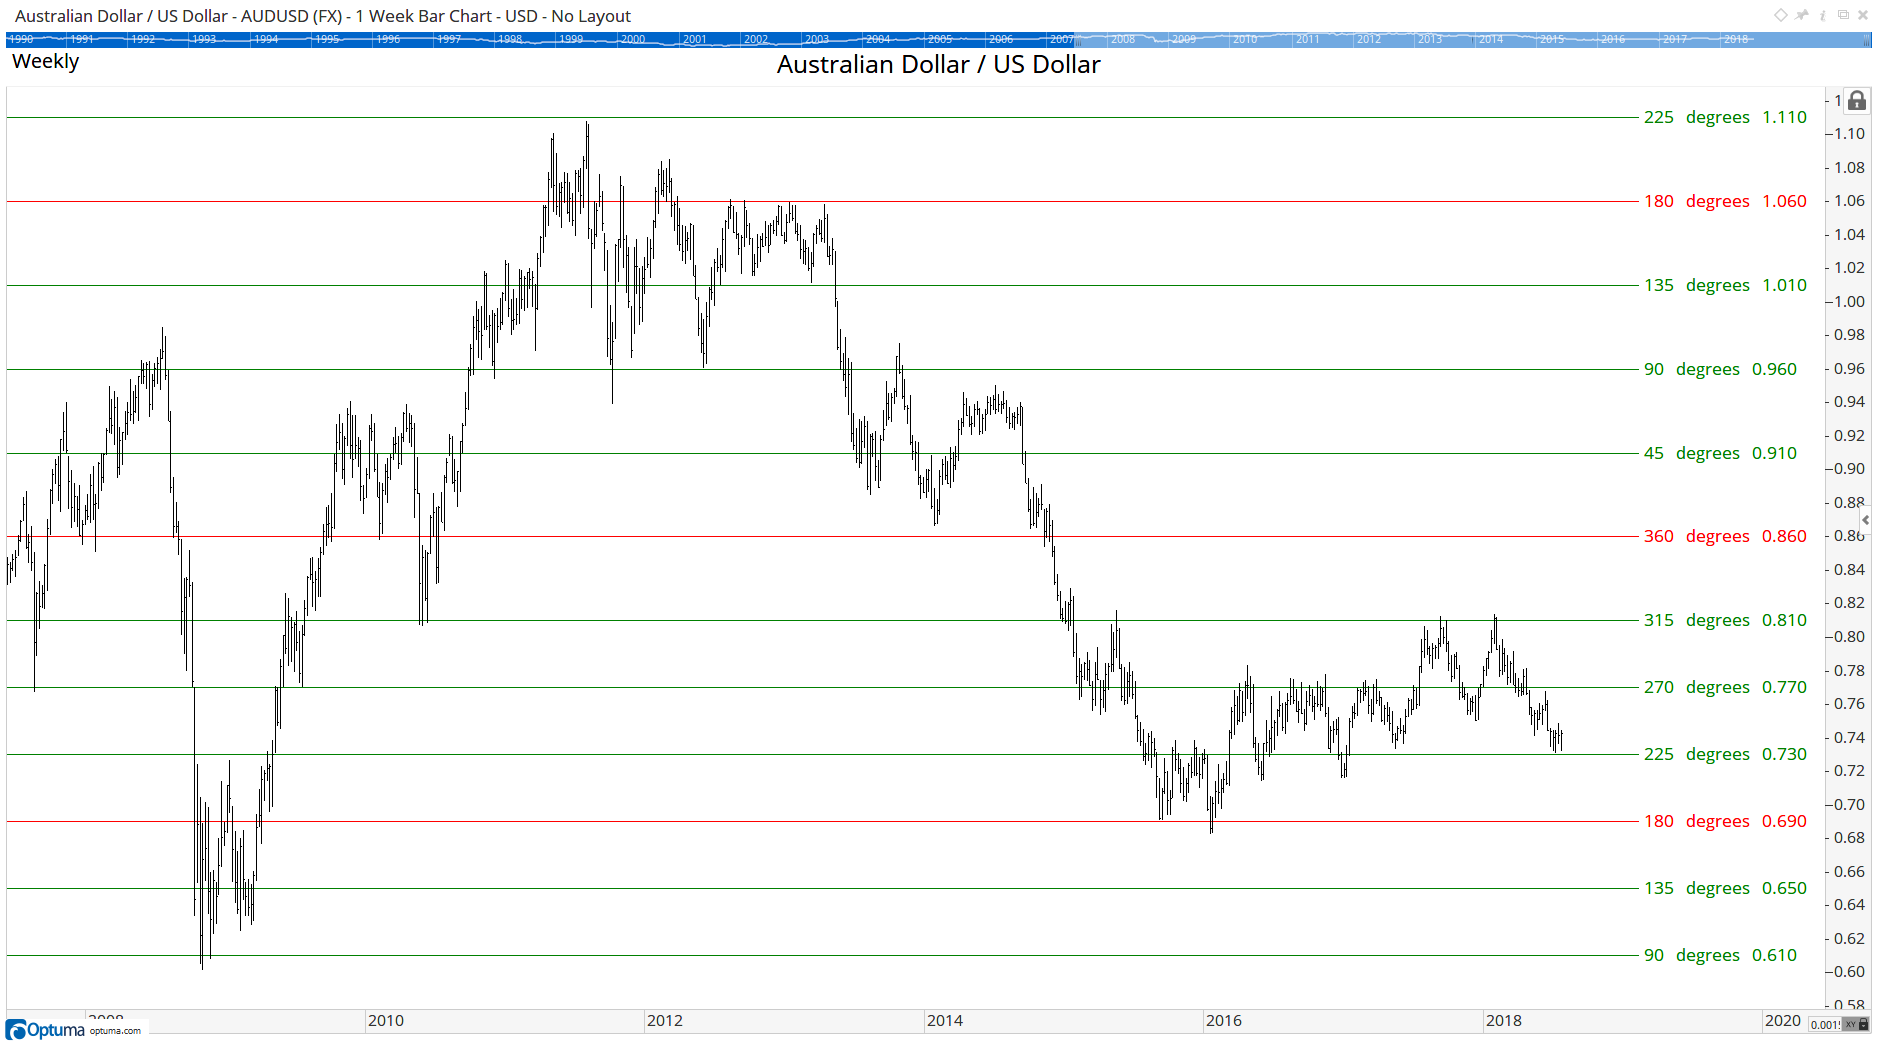 Australian Dollar / US Dollar currency pair on a weekly chart, with the Static Square of 9 applied.